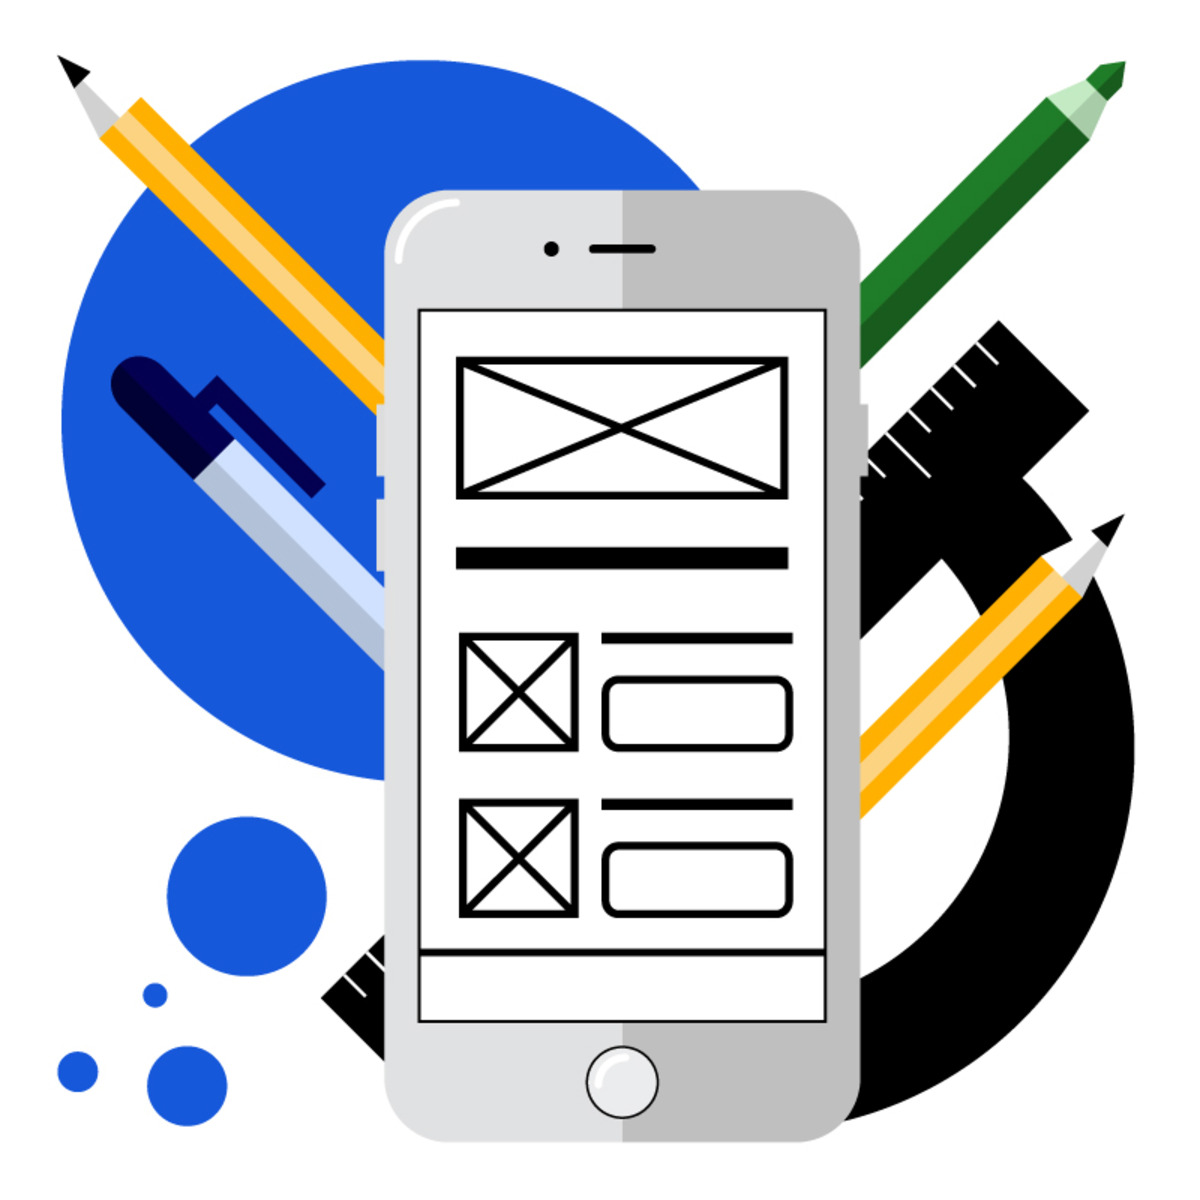 Mobile Interaction Design: How to Design Usable Mobile Products and Services course image